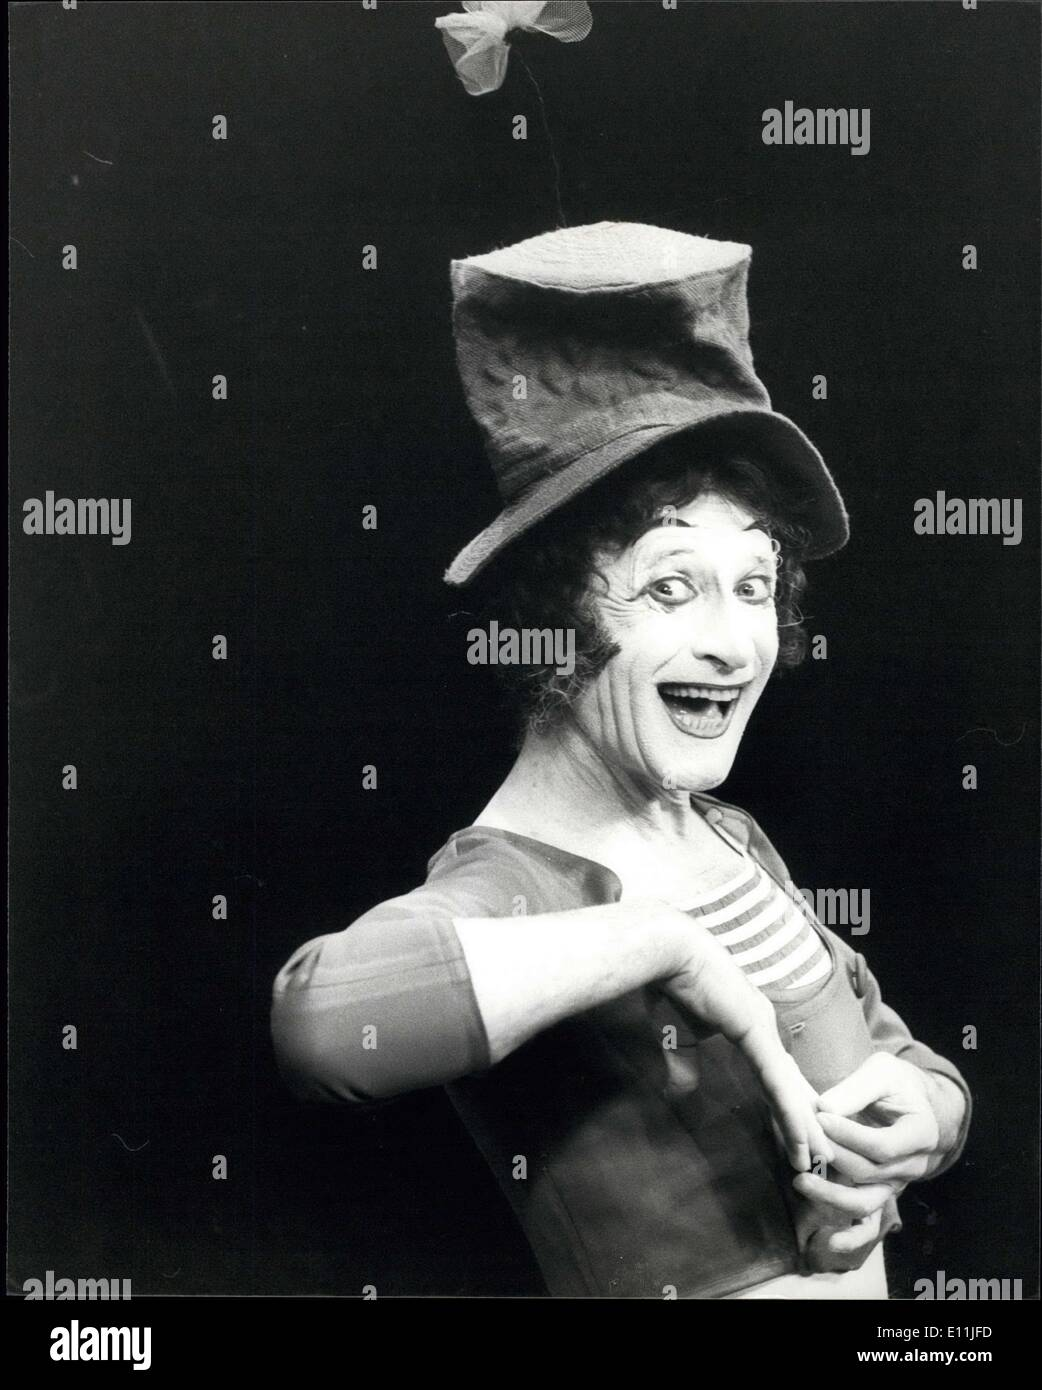 Jul. 31, 1978 - Marcel Marceau returns to Sadler?s Wells ? Marcel Marceau, the world famous French mime returns to Sadler?s Wells Theatre in London for a short season. This will be Marceau?s third visit to Sadler?s Wells after a highly successful tour of America. Photo Shows: Marcel Marceau seen during his act on the stage during the photo call today. AM/Keystone - Stock Image